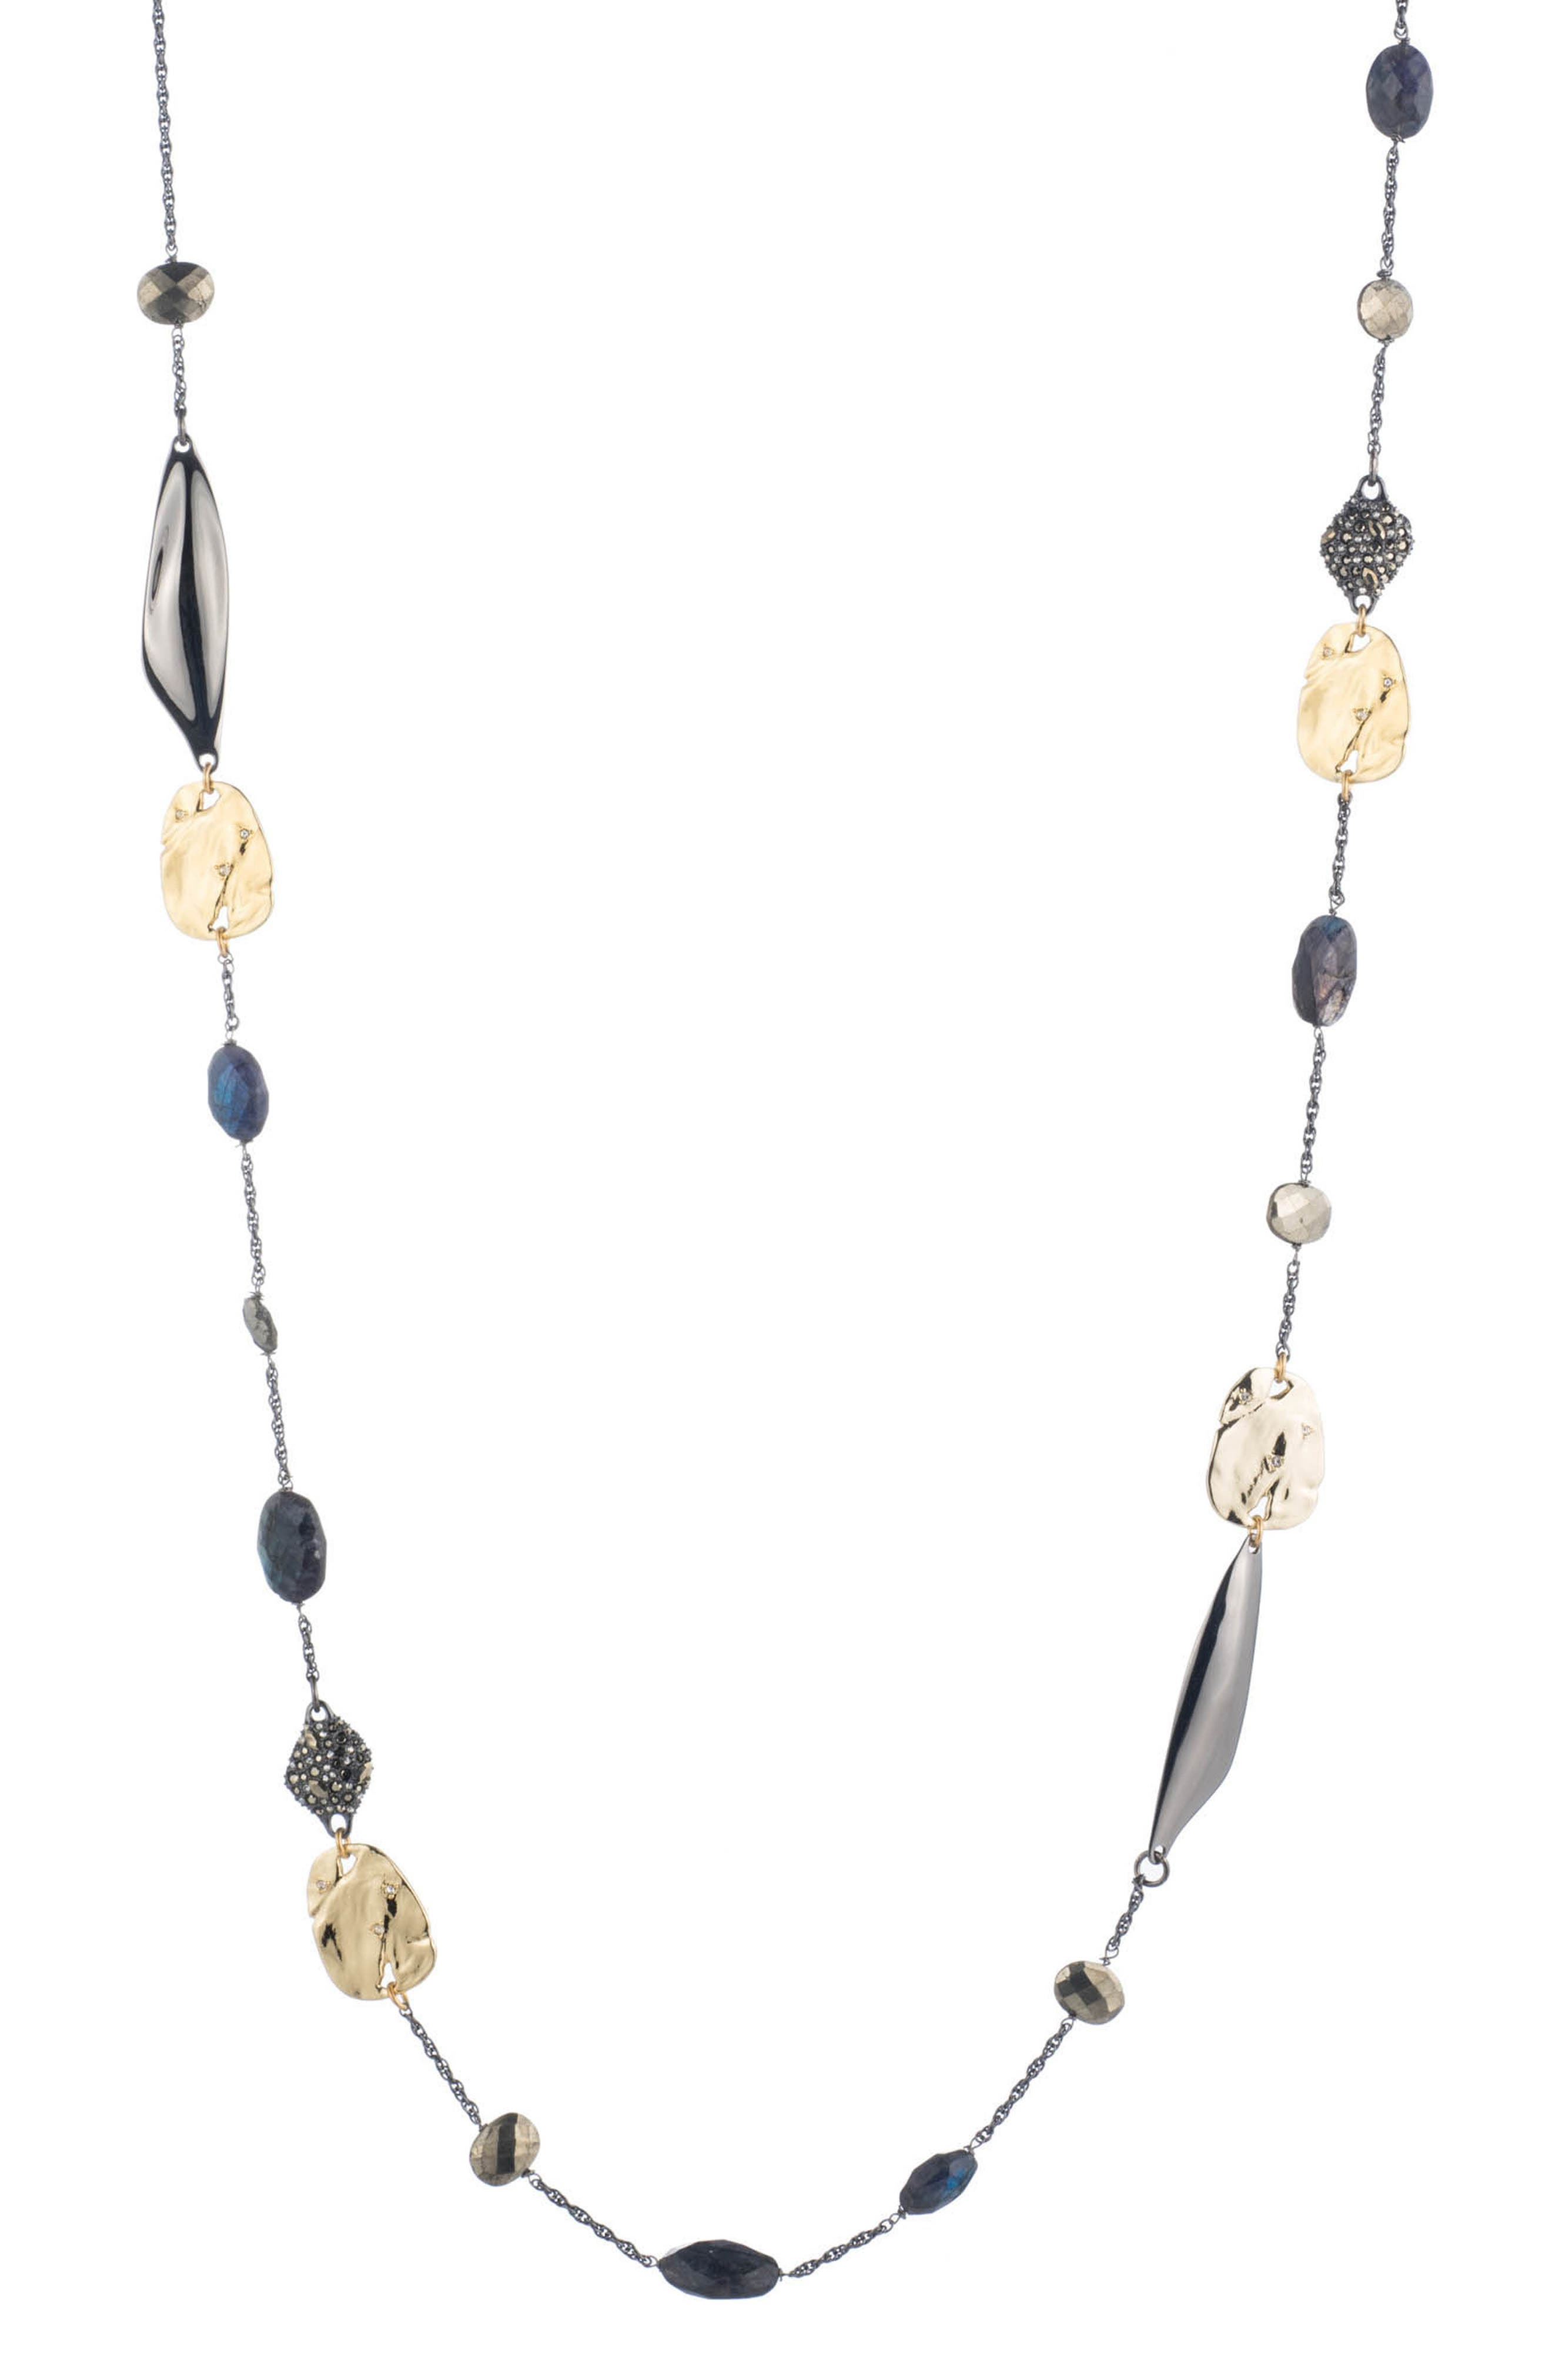 Alternate Image 1 Selected - Alexis Bittar Elements Station Necklace